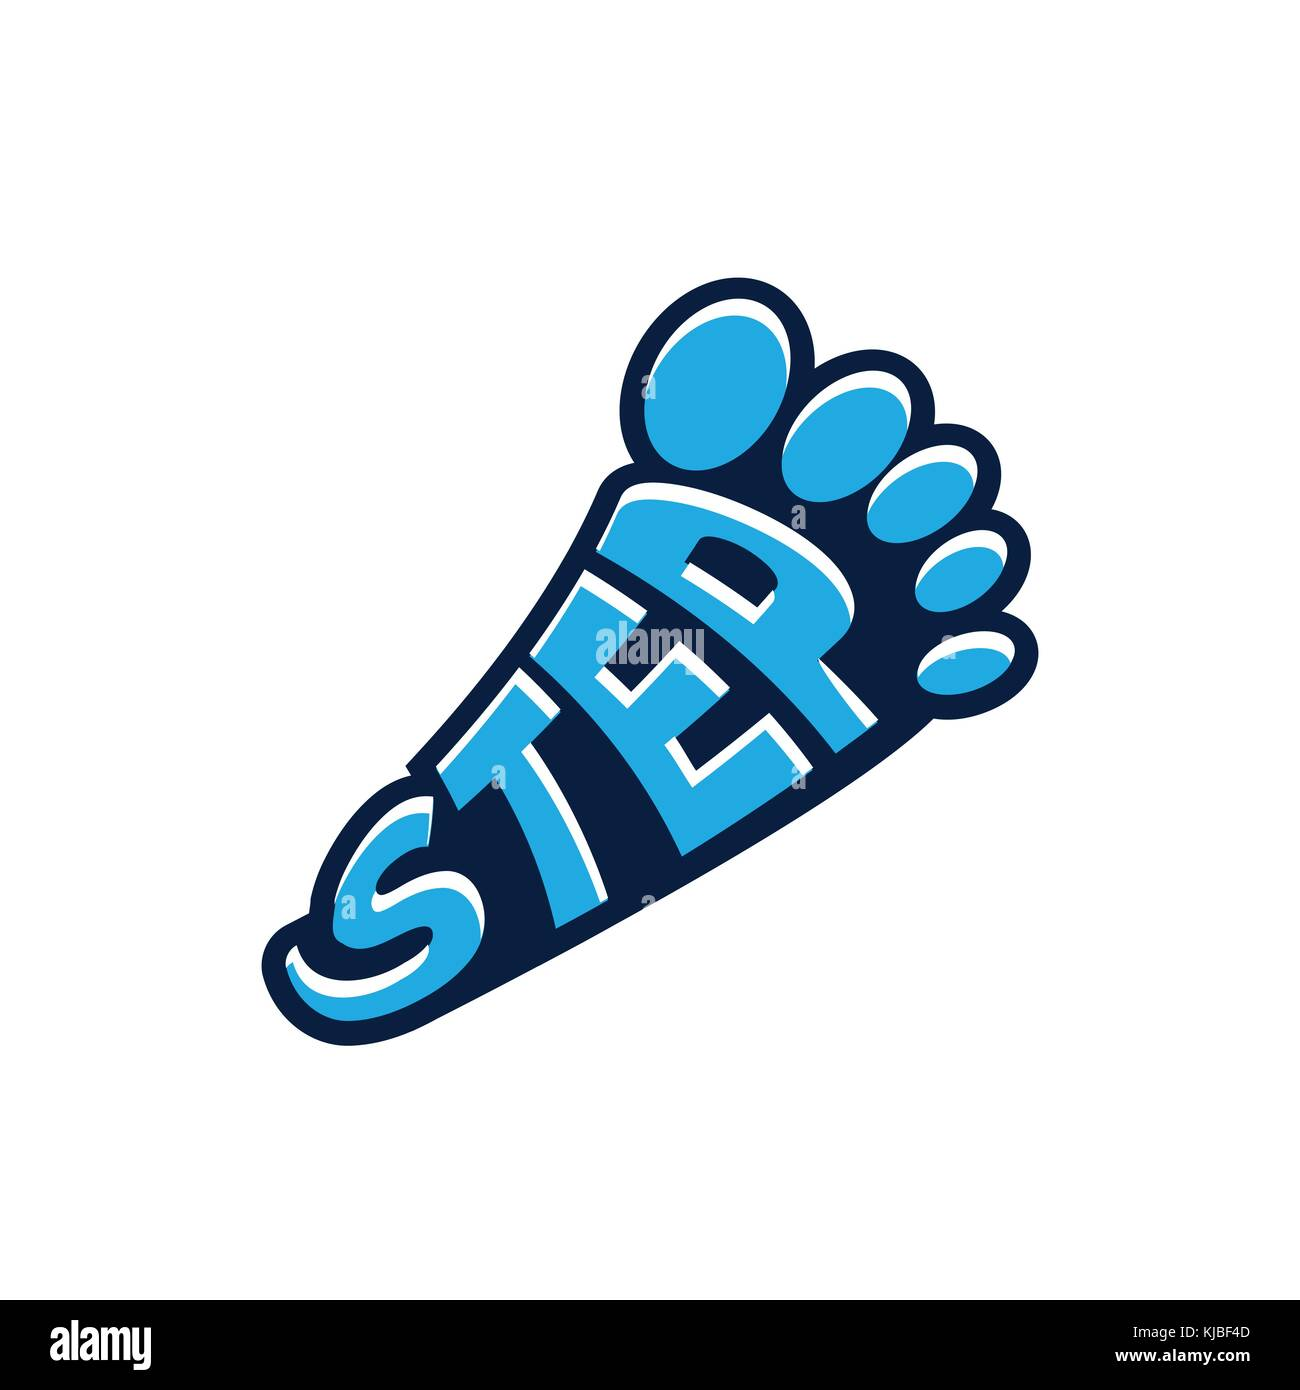 step word as footprint, step word forms footprint, footprint symbol, icon design, isolated on white background. - Stock Vector